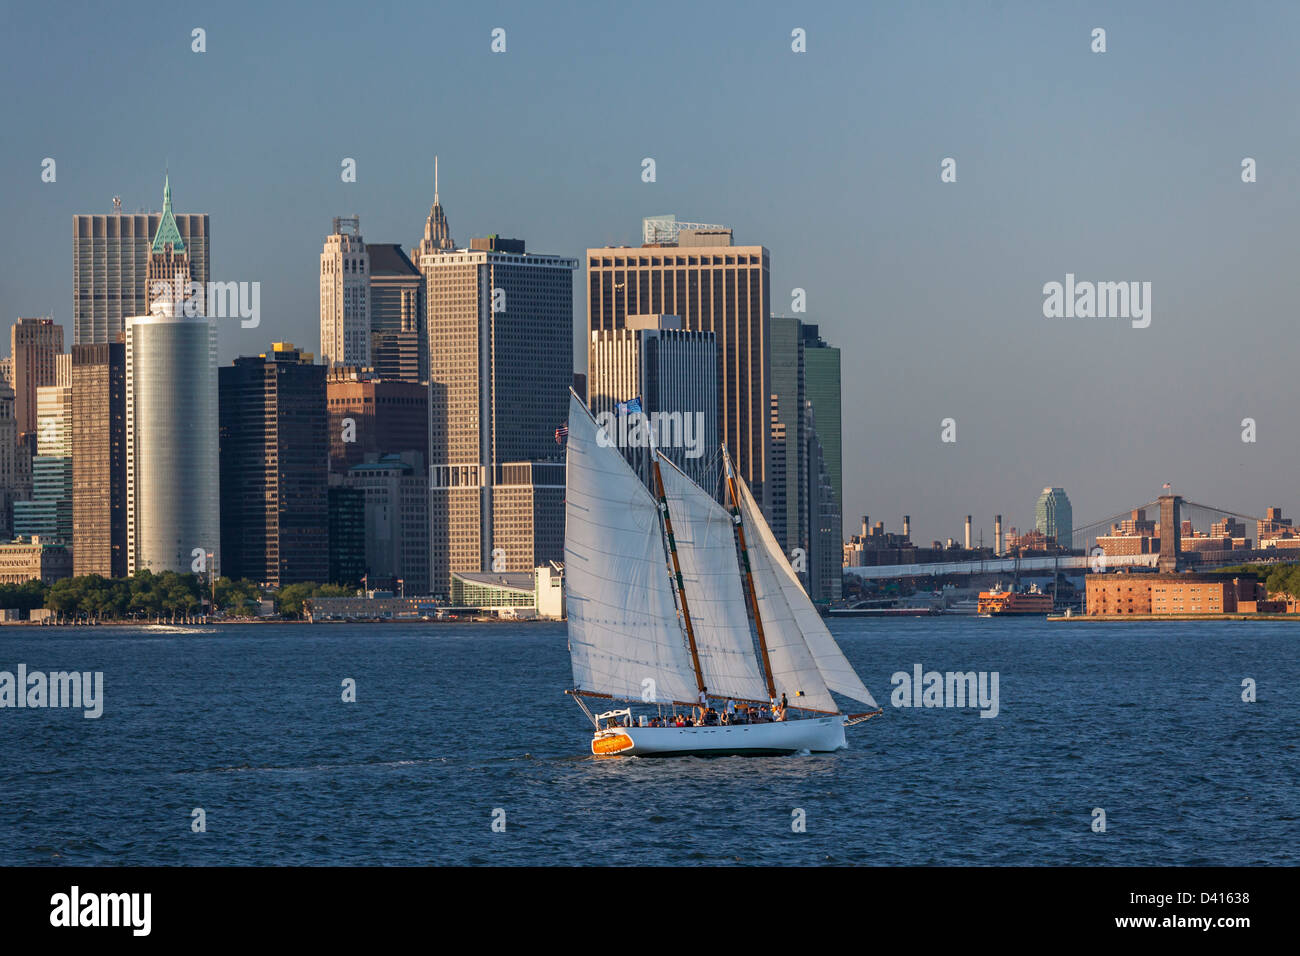 Lower Manhattan Skyline, Sailing Boat, East River, New York Stock Photo